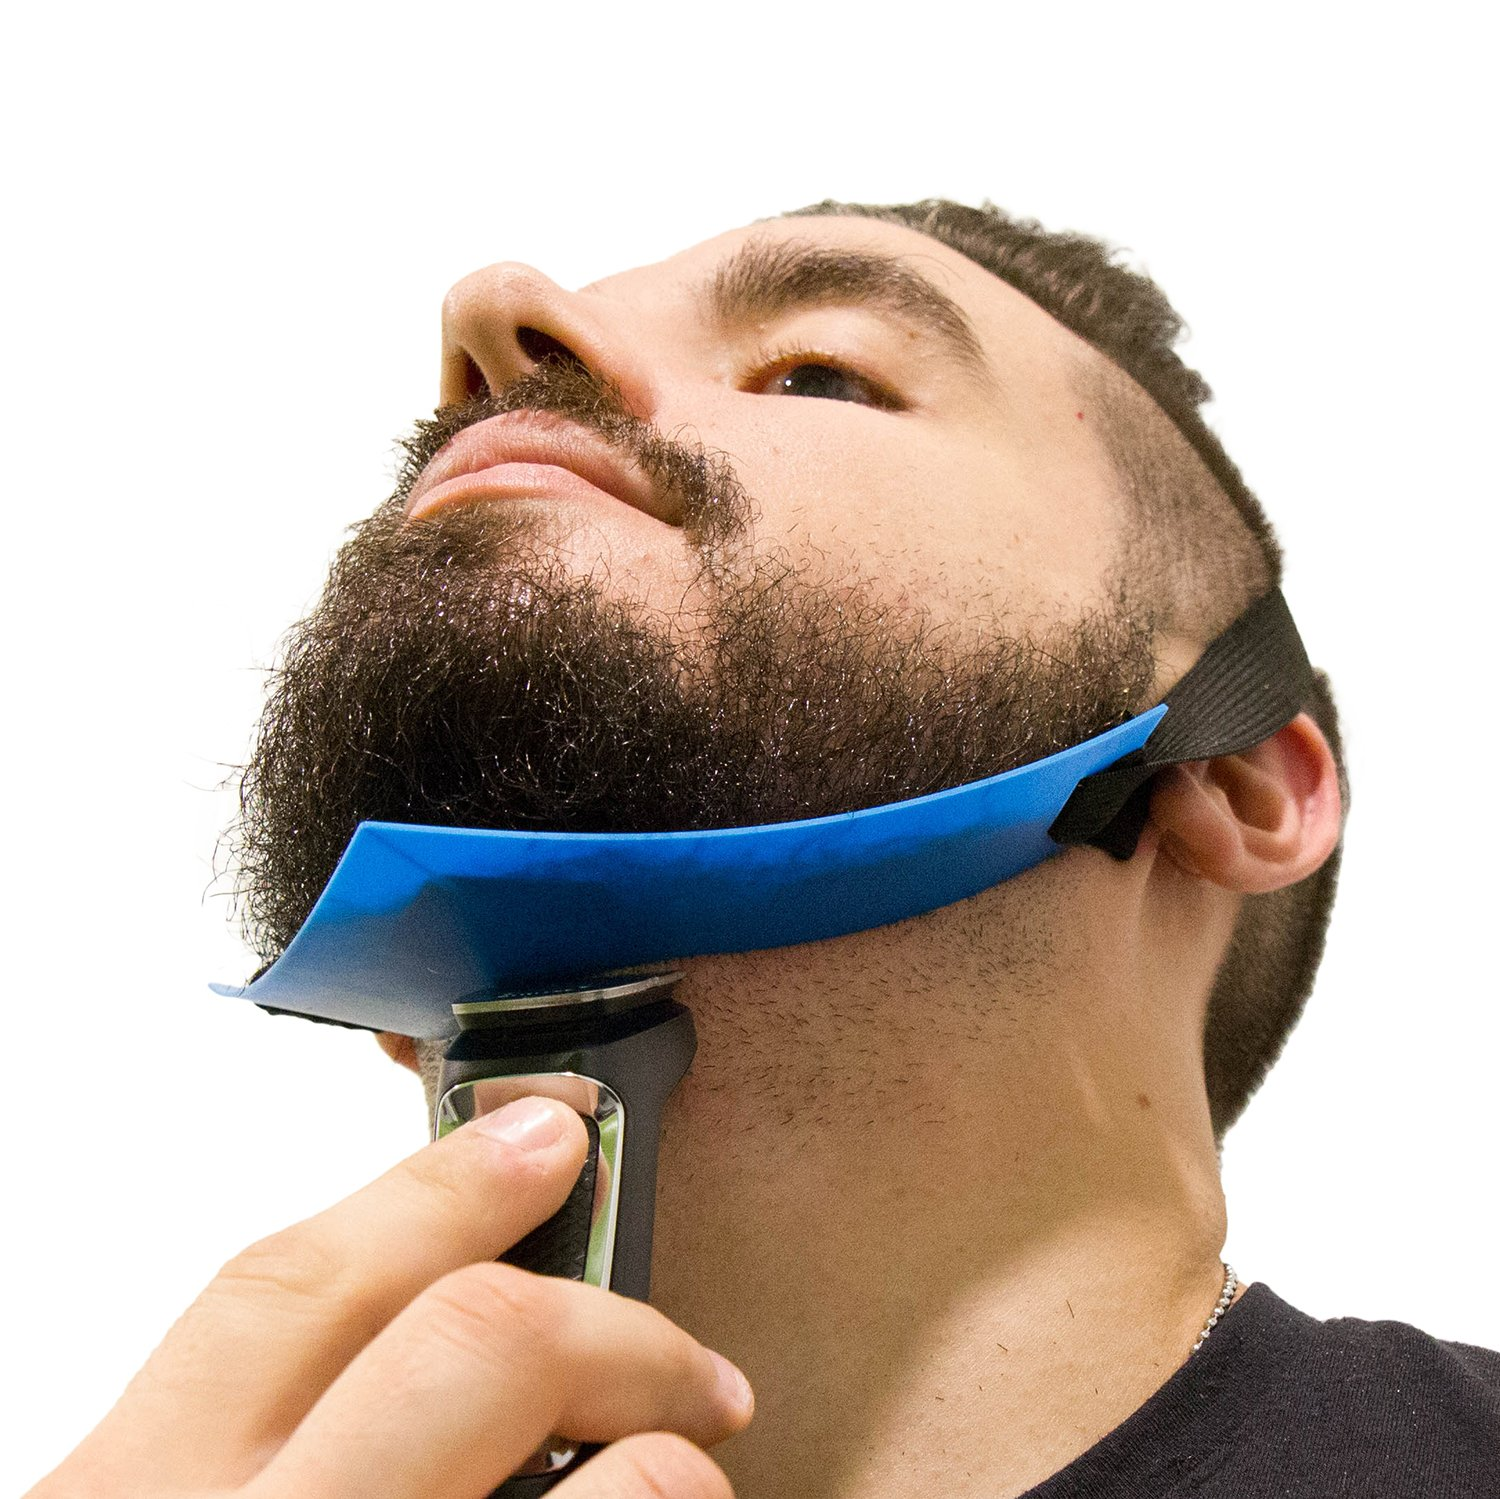 Aberlite Beard Shaper - FlexShaper Neckline Guide - Hands-Free & Flexible - The Ultimate Neckline Beard Shaping Template (Patent Pending)(Blue) - Beard Trimmer Tool - Lineup Stencil Kit